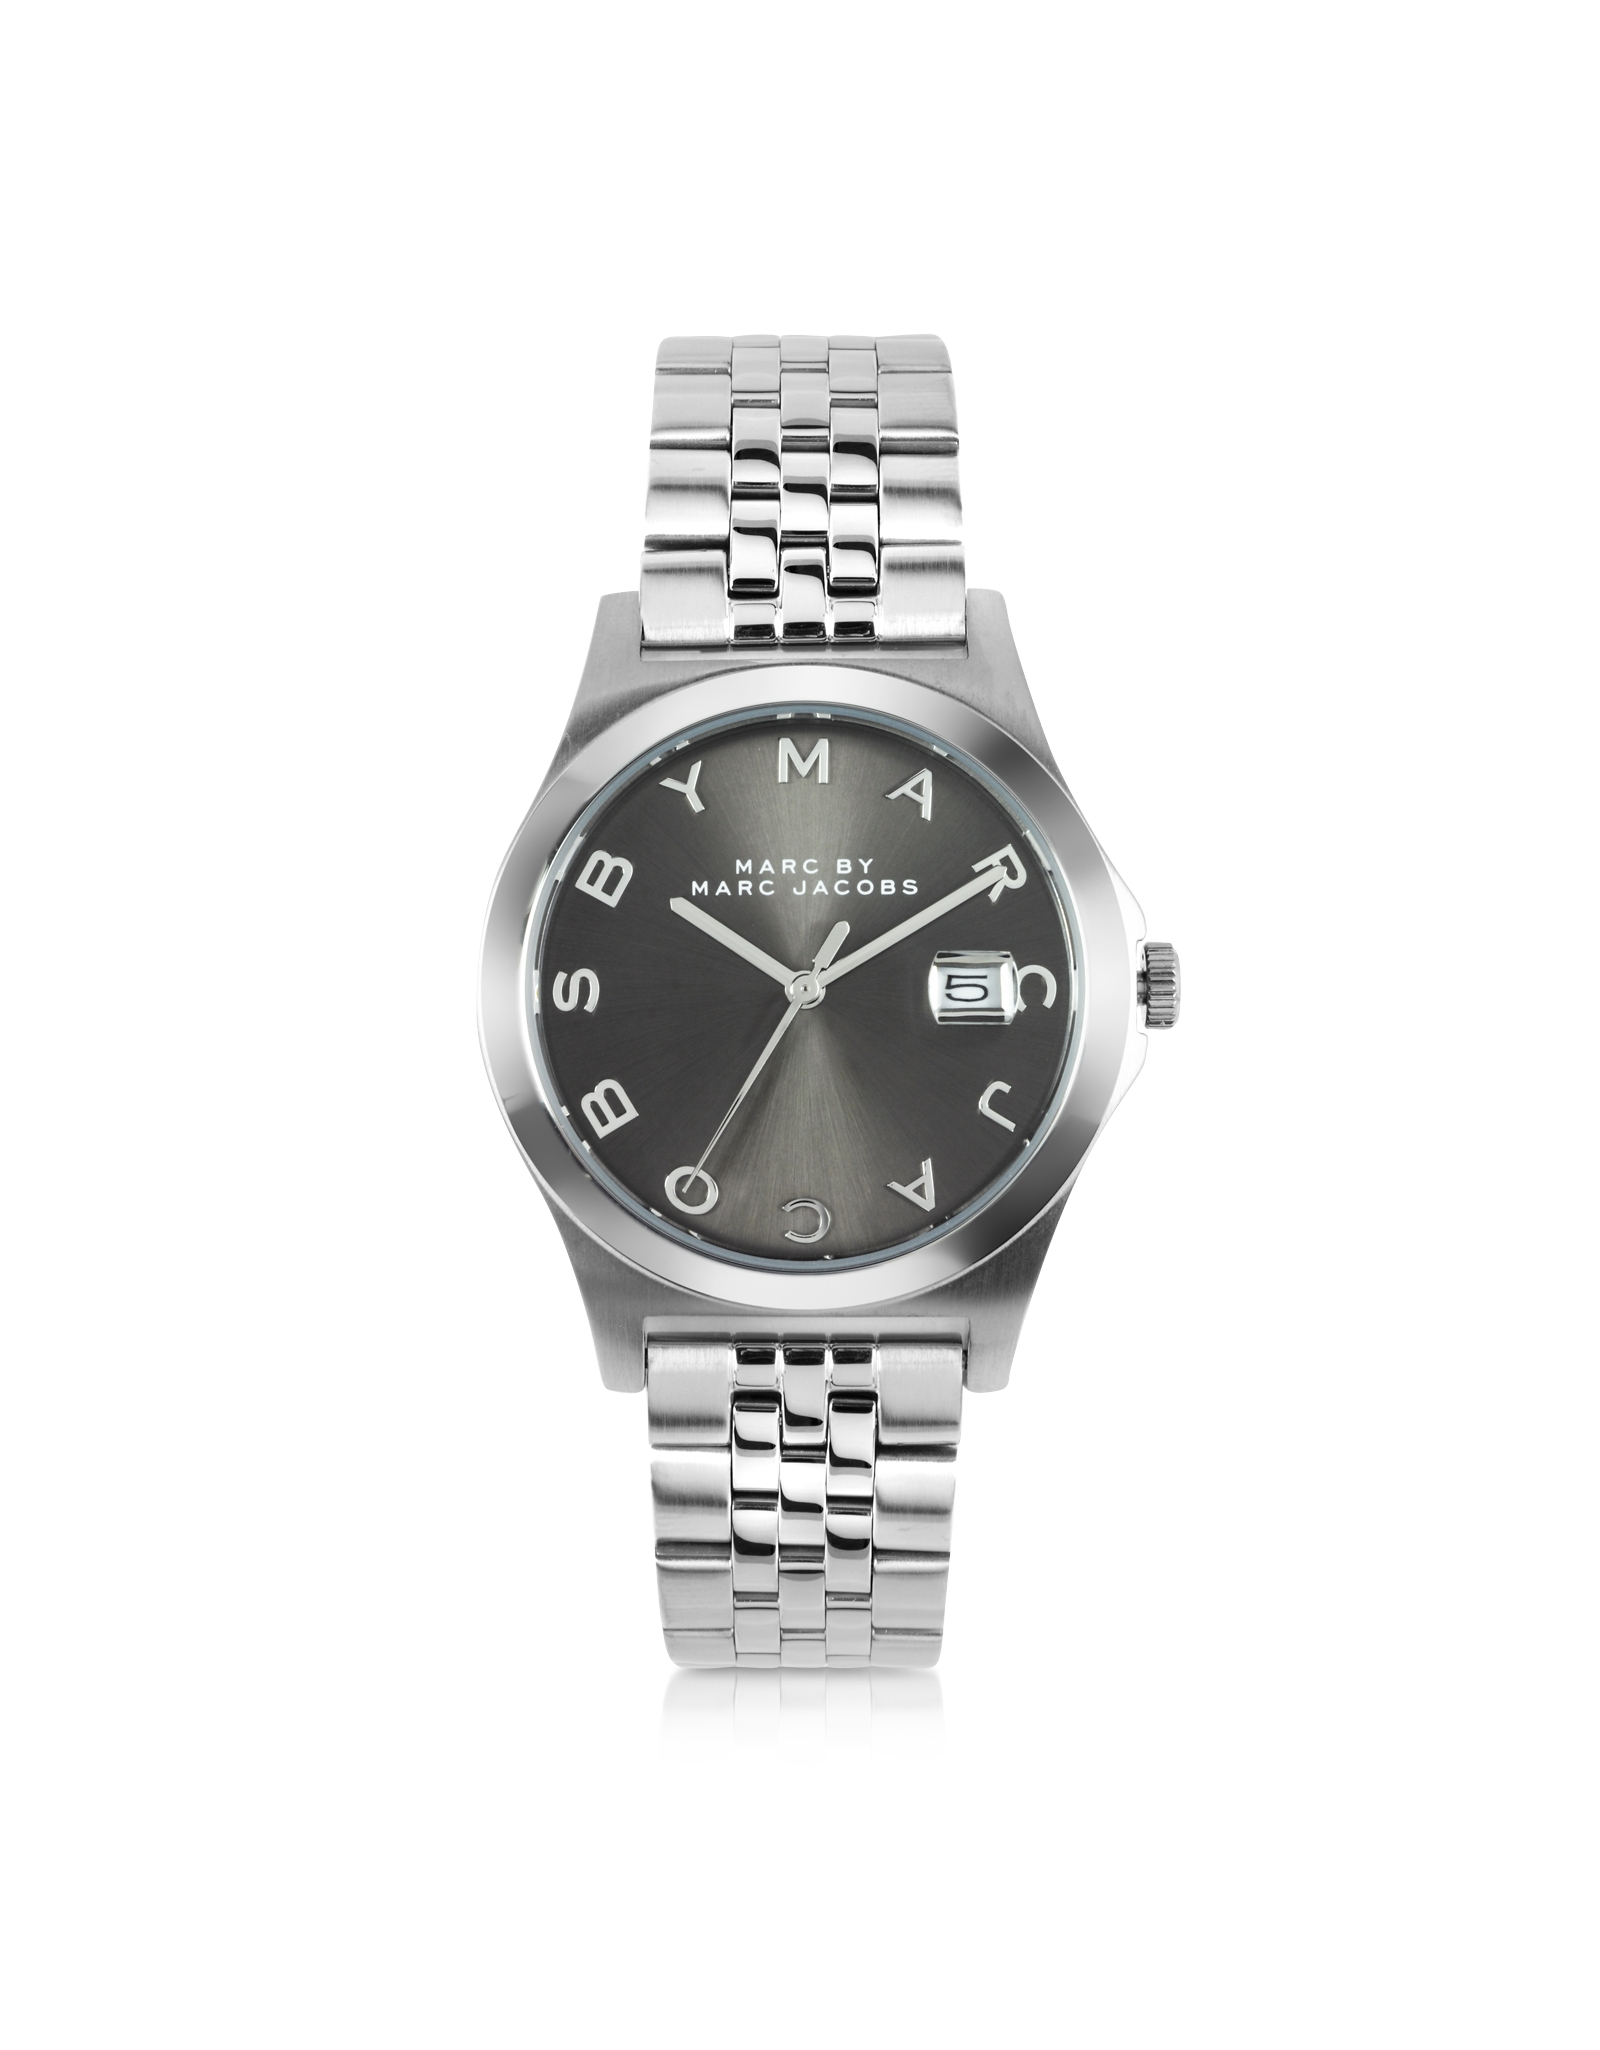 56d4d7d7193f4 Marc By Marc Jacobs The Slim Bracelet 36Mm Silver Tone Stainless ...